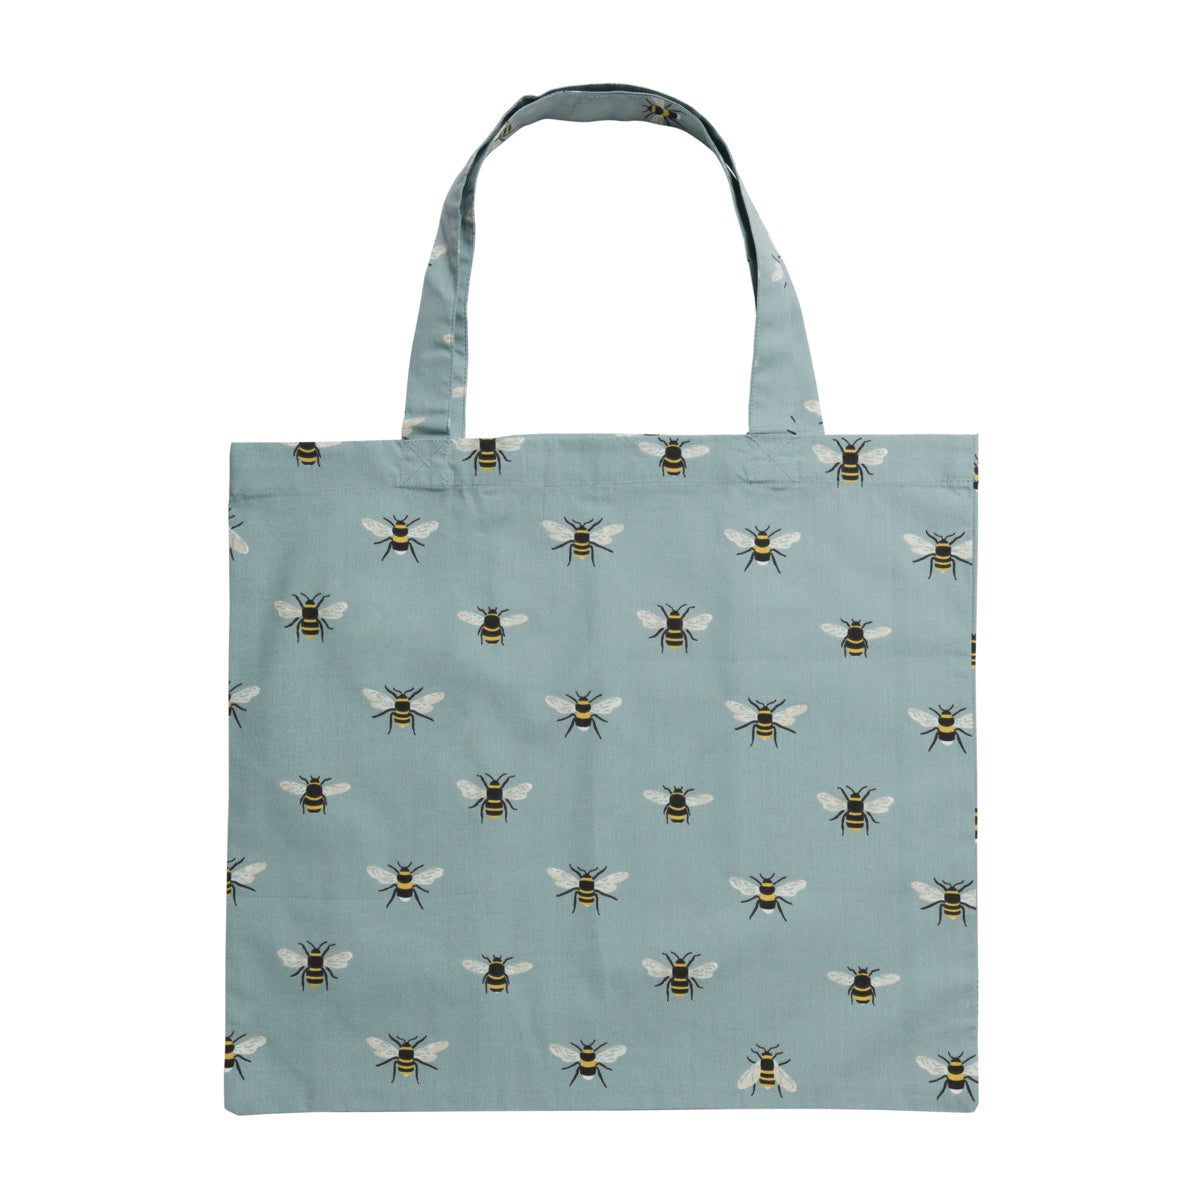 Bees Teal Folding Shopping Bags  by Sophie Allport